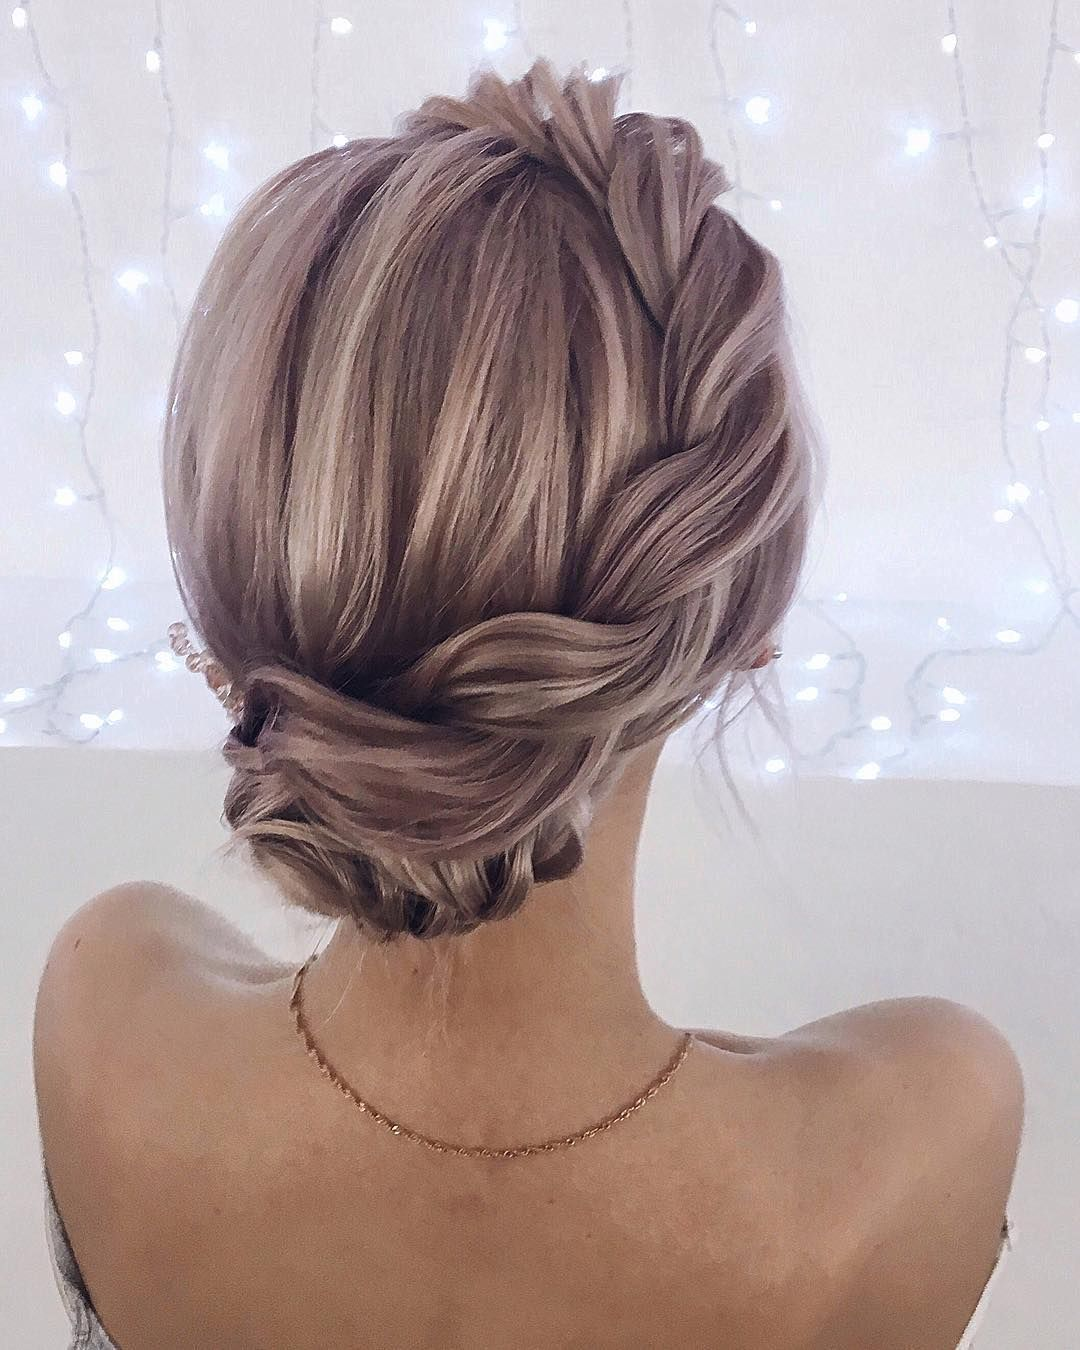 29 Cool Wedding Hairstyles For The Modern Bride: Updo Bridal Hairstyles ,Unique Wedding Hair Ideas To